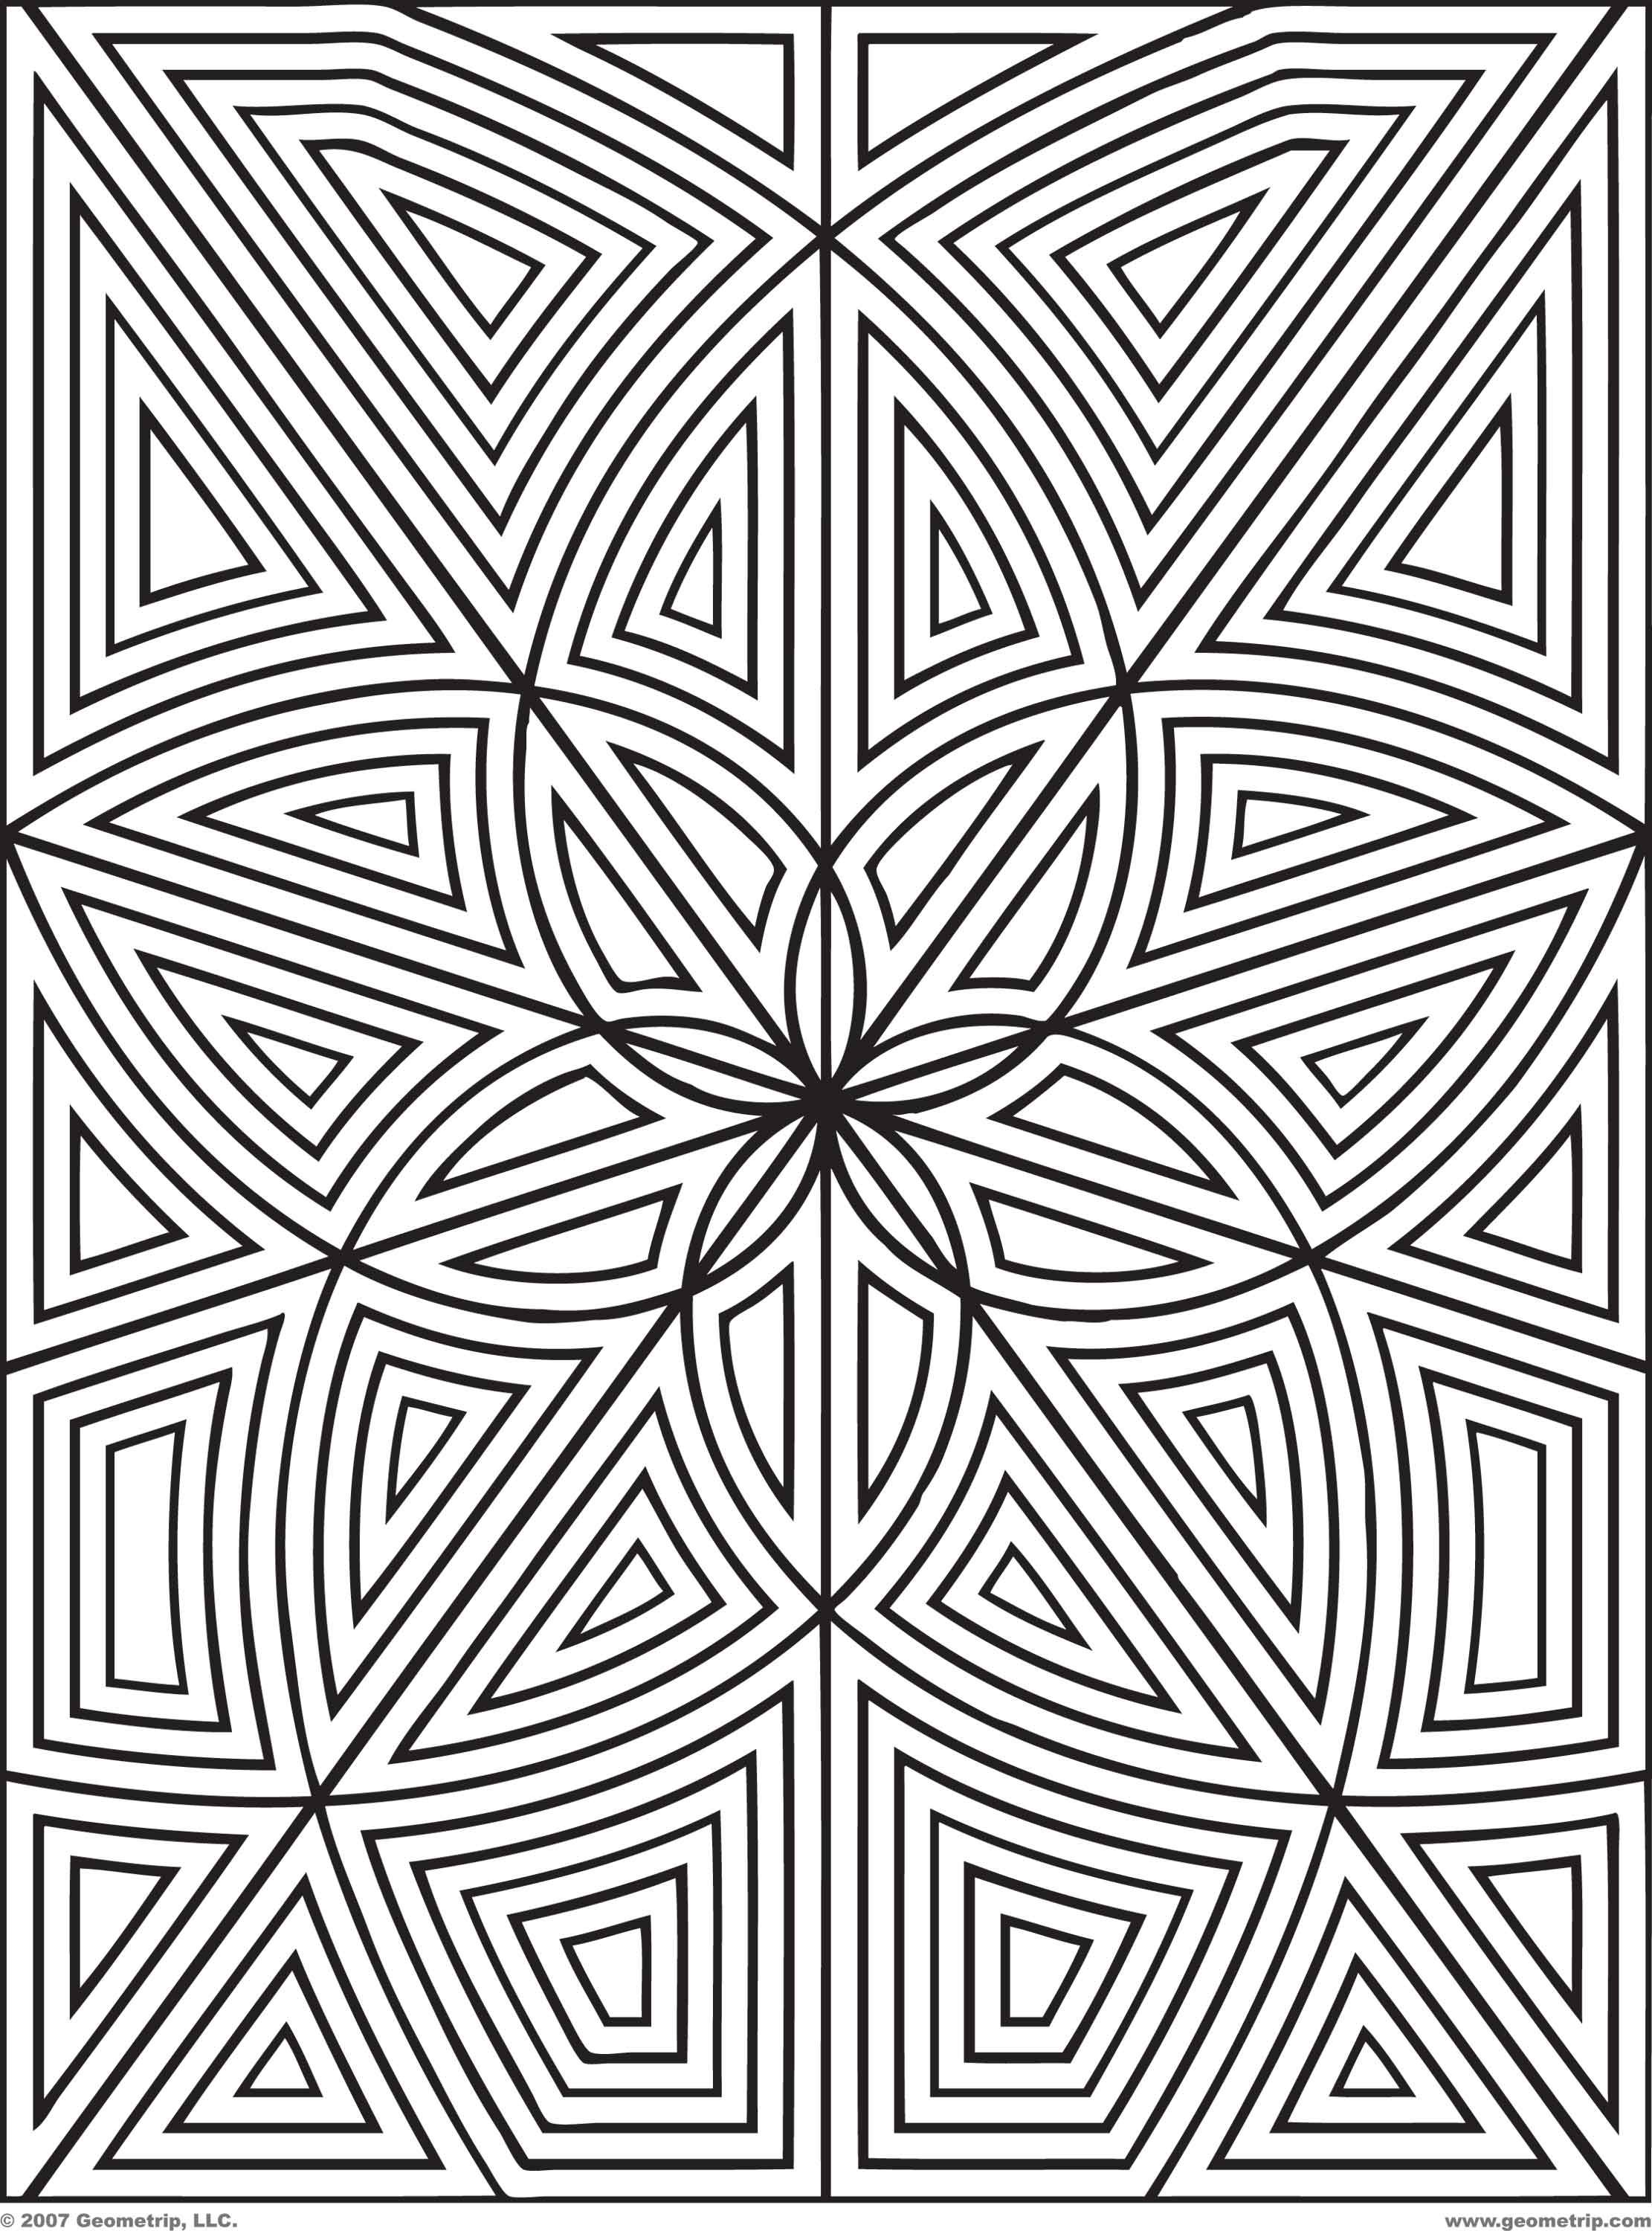 Coloring Page Shape Geometric Designs Another Picture And Gallery About Free Design Pages Adult Print Cool To Color